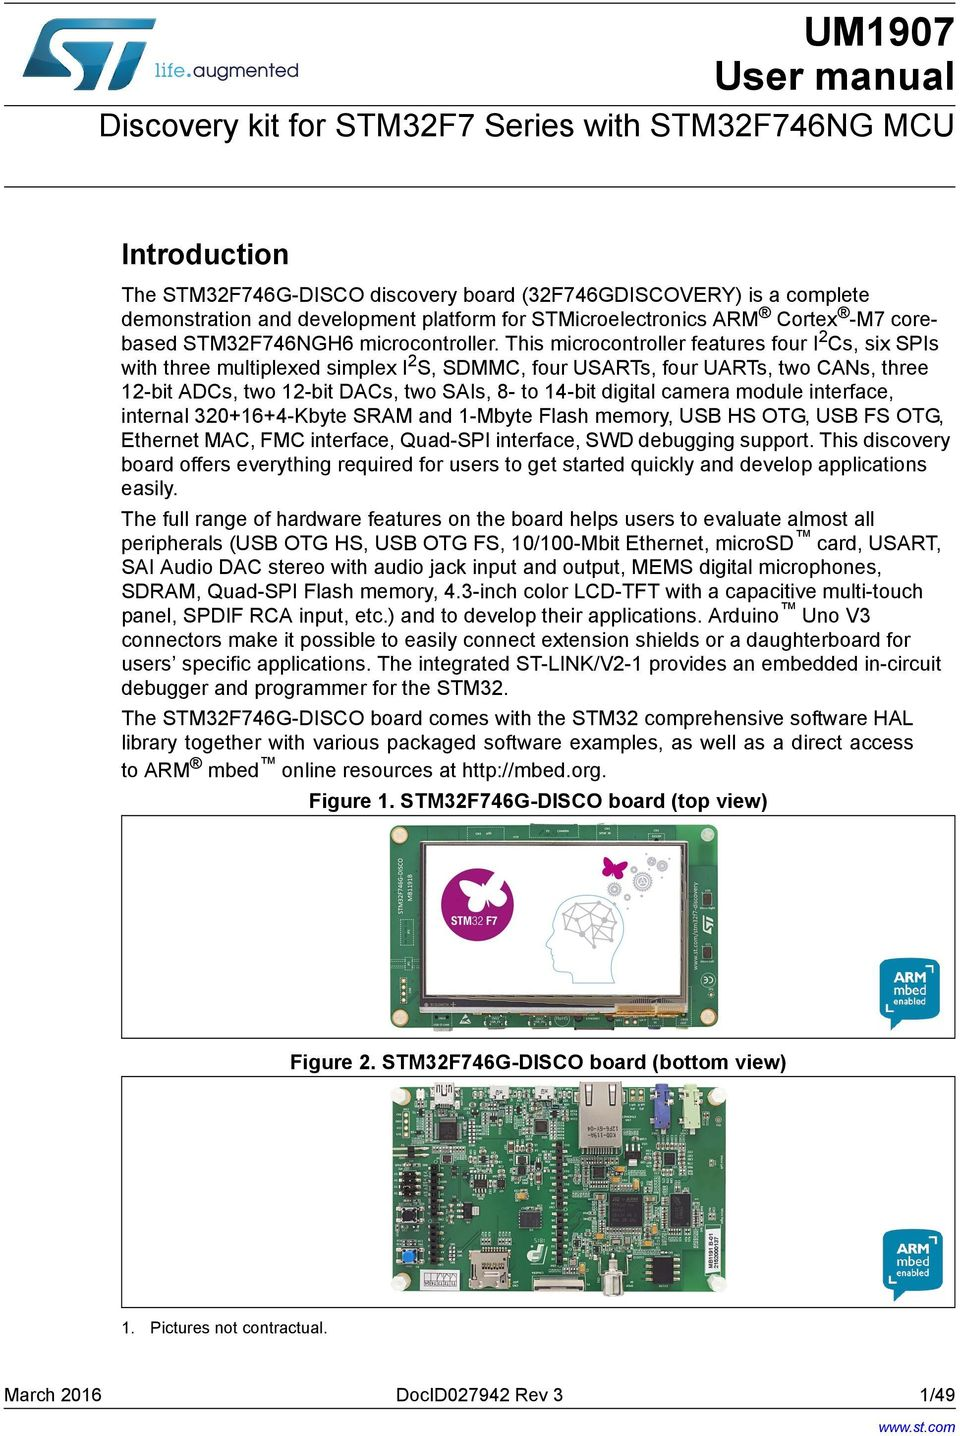 Discovery kit for STM32F7 Series with STM32F746NG MCU - PDF